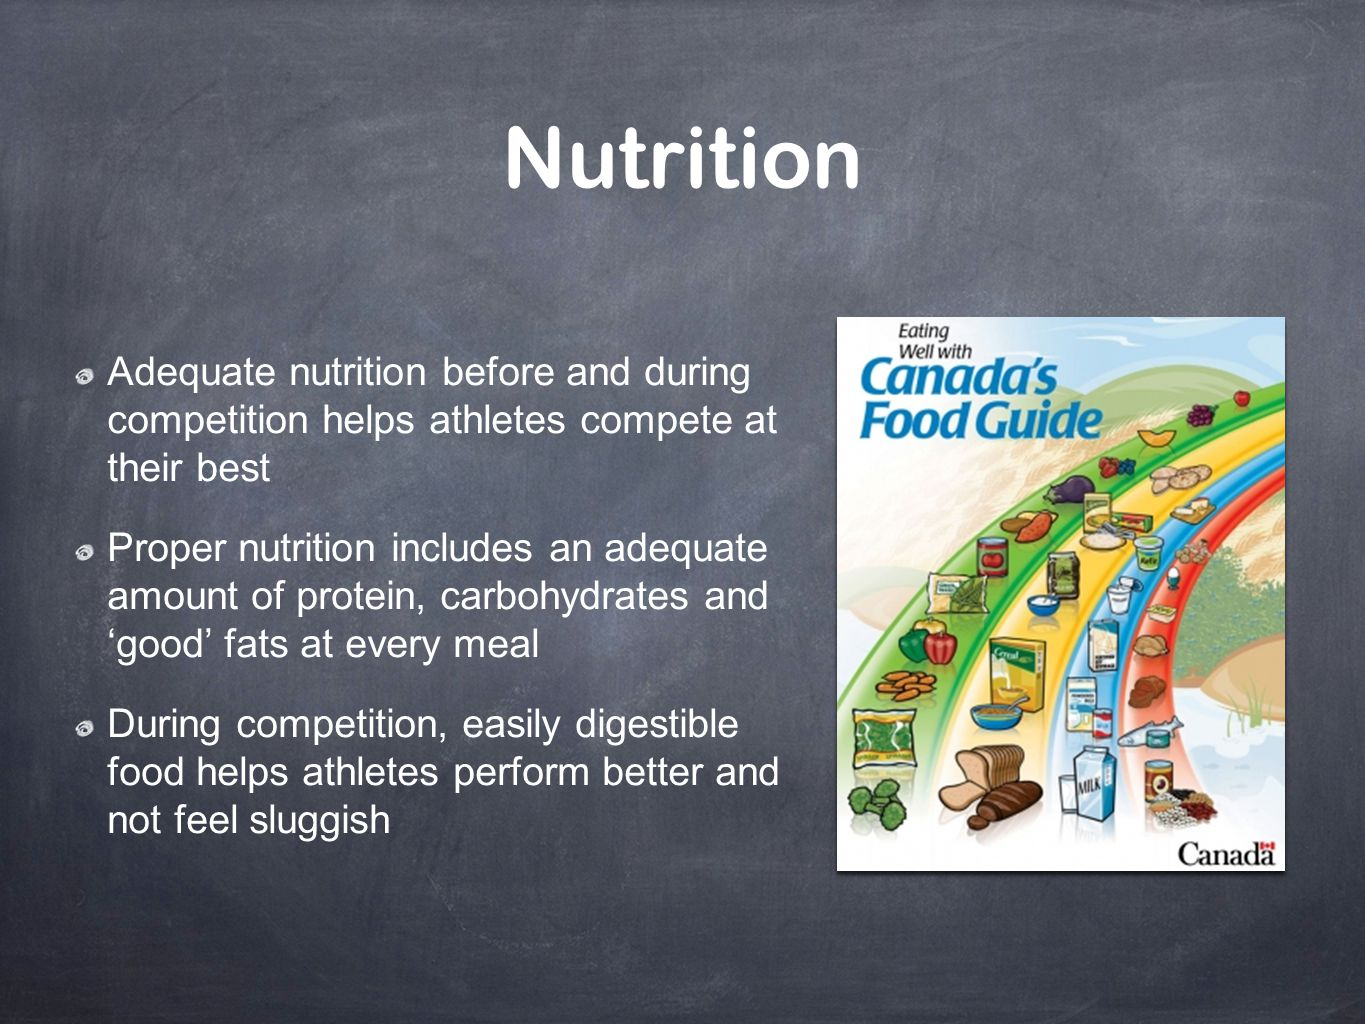 Nutrition Adequate nutrition before and during competition helps athletes compete at their best.